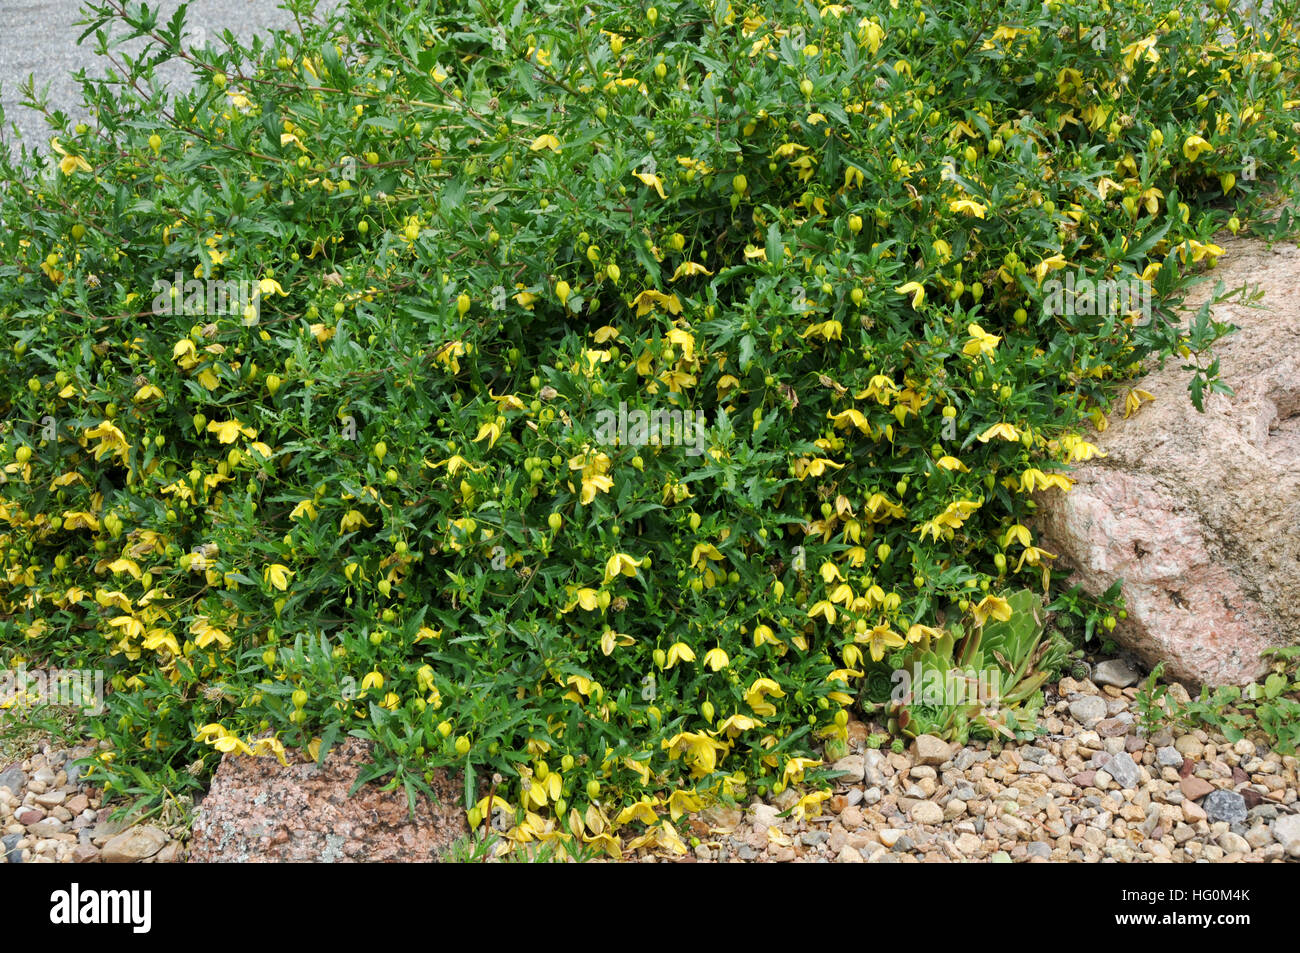 Hanging Shrub With Yellow Flowers Stock Photo 130322883 Alamy